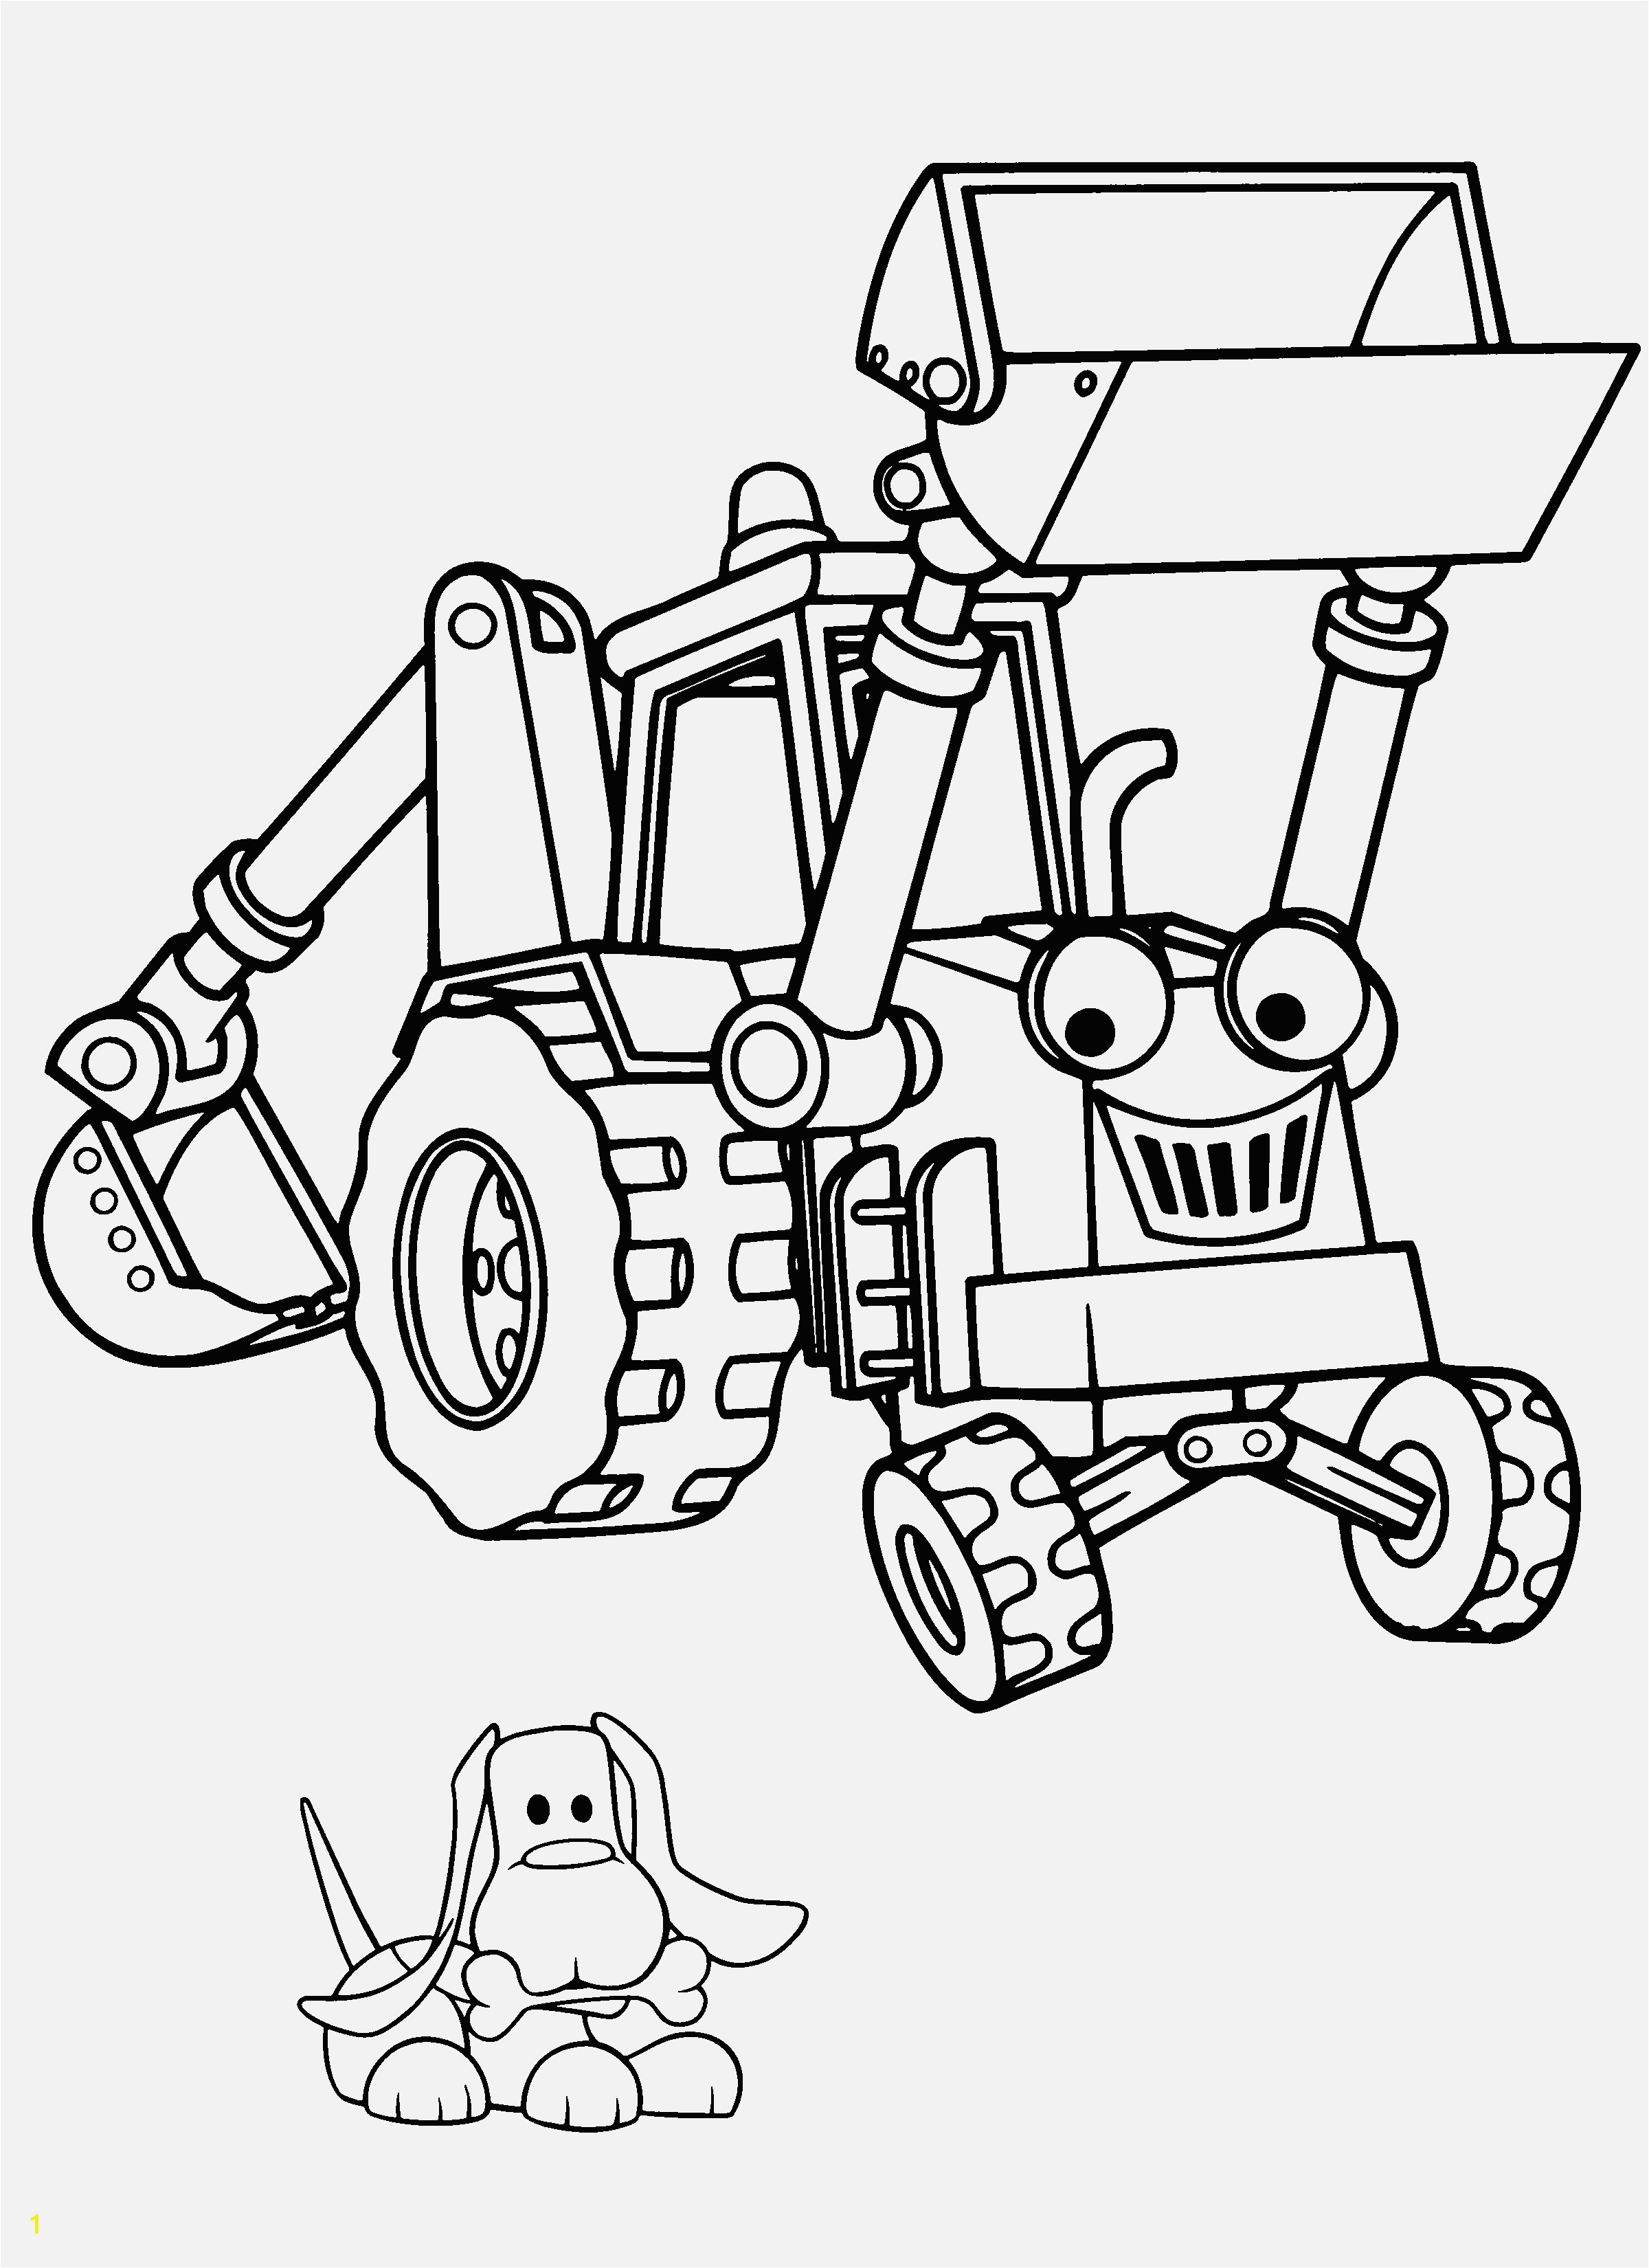 Olchis Ausmalbilder Lernspiele Färbung Bilder 28 Collection Bob the Builder Coloring Pages Scoop Olchis